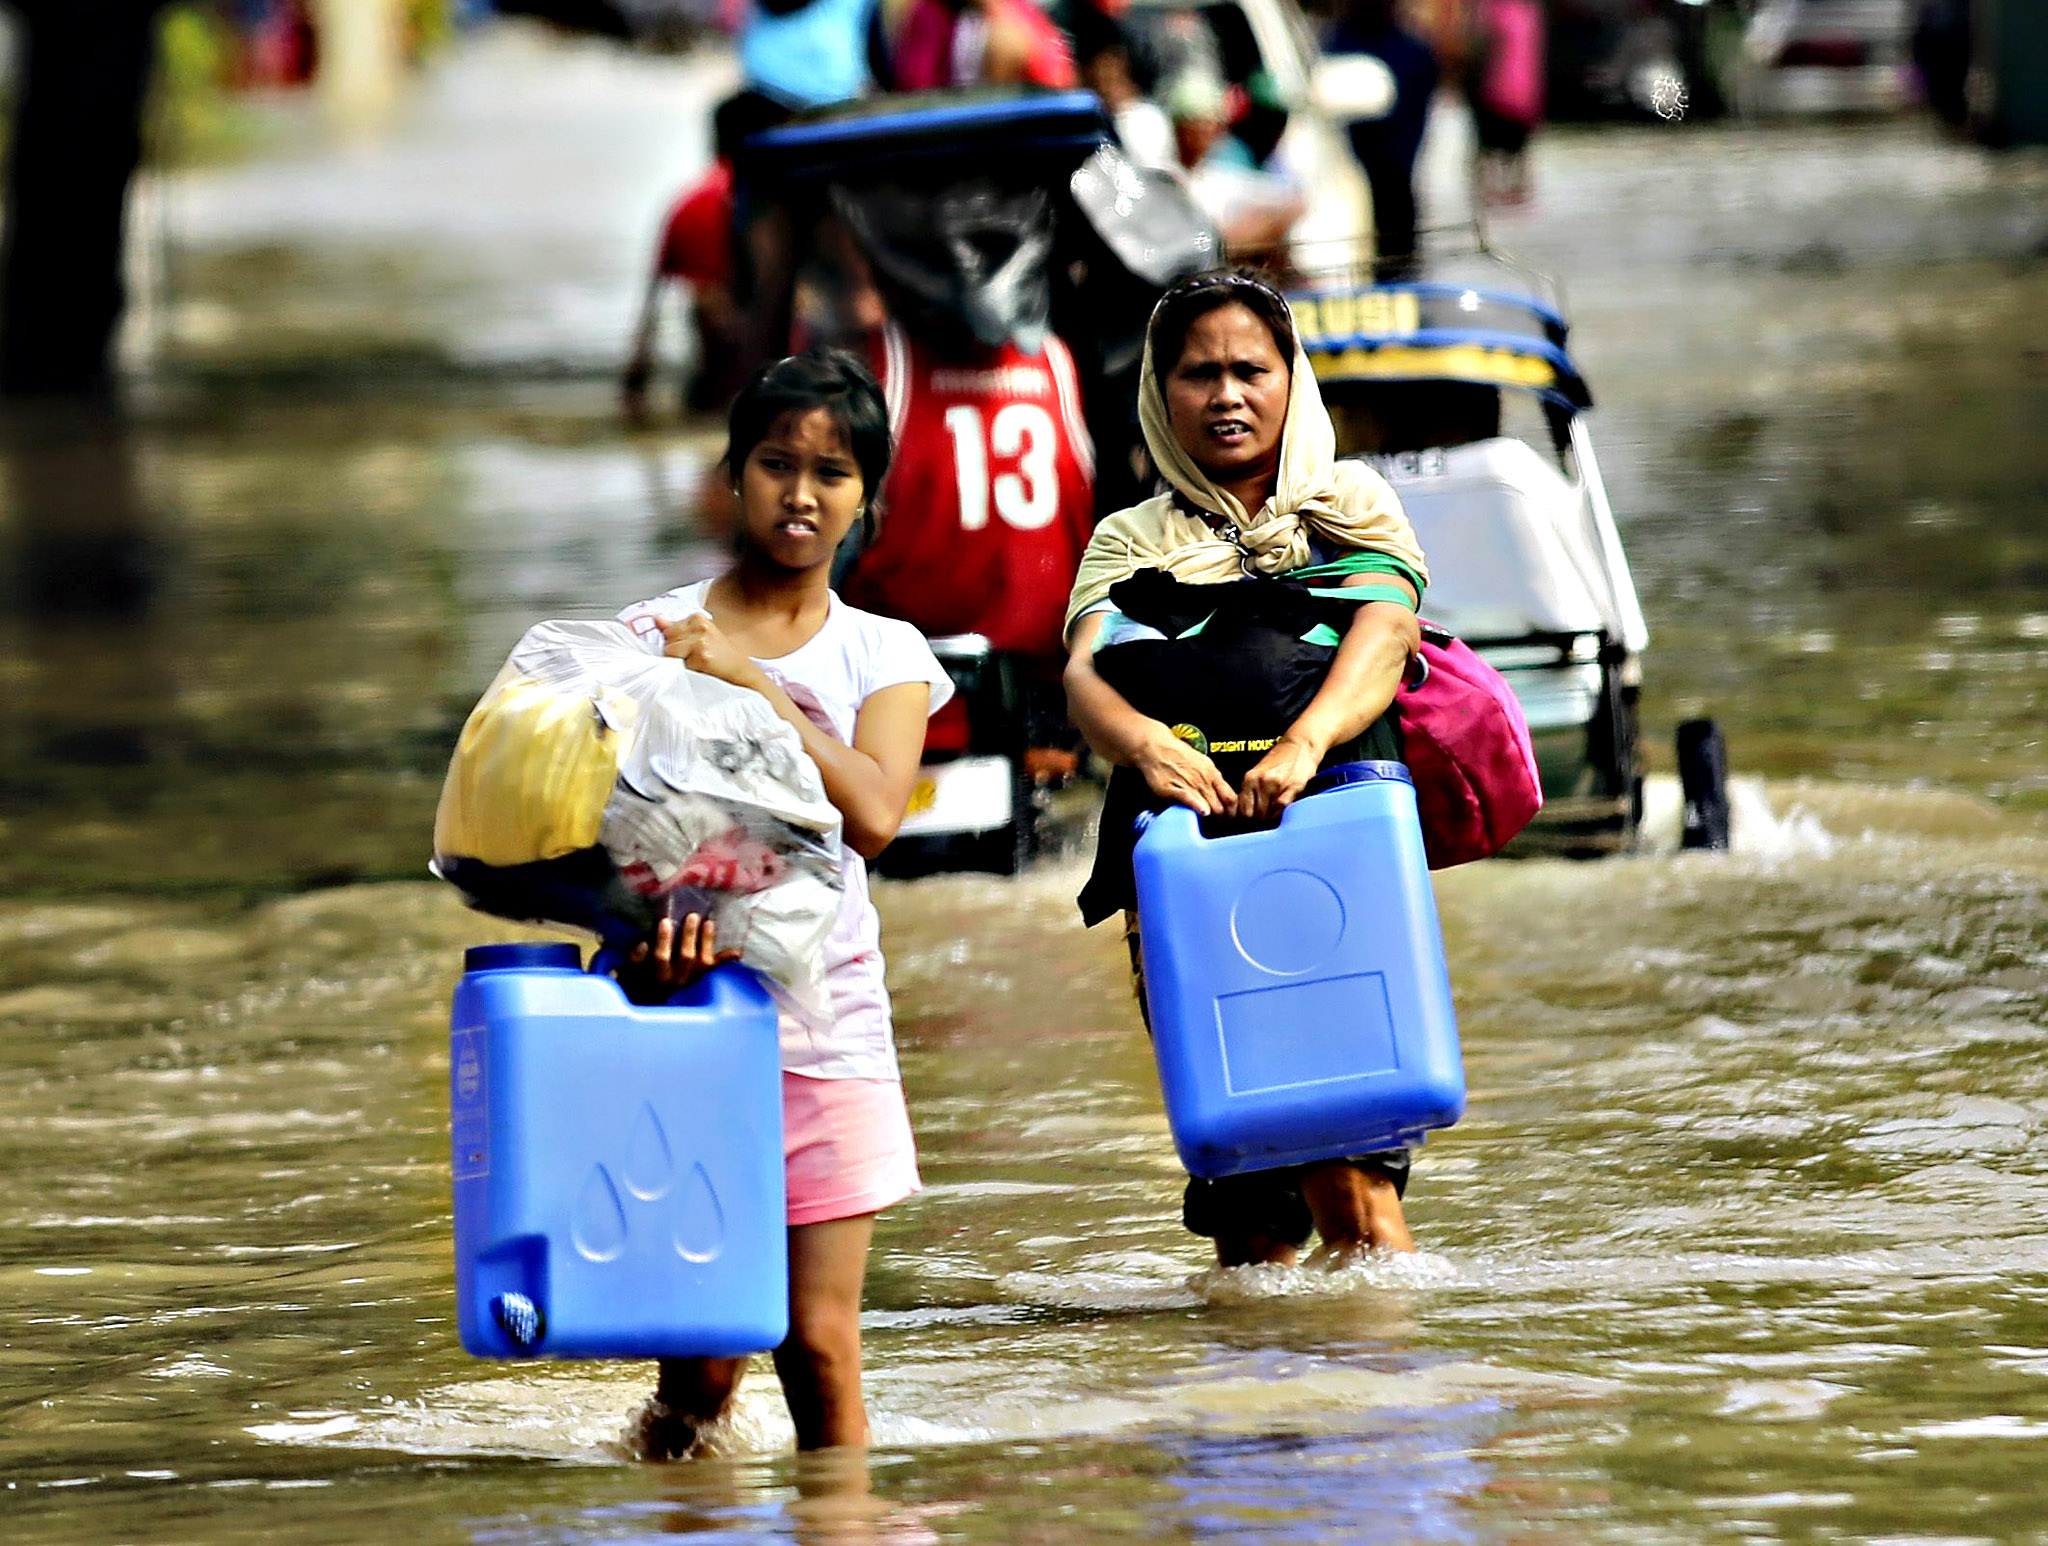 Filipino villagers maneuver on floodwater in the typhoon-hit town of La Paz, Tarlac province, southern Manila, Philippines, 17 December 2015. Relief officials on 16 December 2015 rushed aid to tens of thousands of people affected by a typhoon that left at least 12 people dead as a new tropical depression entered Philippine territory. The weather bureau said the tropical depression was spotted Wednesday afternoon 650km off Mati City, in the southern province of Davao Oriental. The arrival of the new tropical depression comes on the heels of Typhoon Melor, which pummeled the Philippines during the past three days. The weather bureau said a weakened Melor, with maximum sustained winds of 100kph near the center and gusts of up to 130kph, continued to move westward at 7kph in the South China Sea.